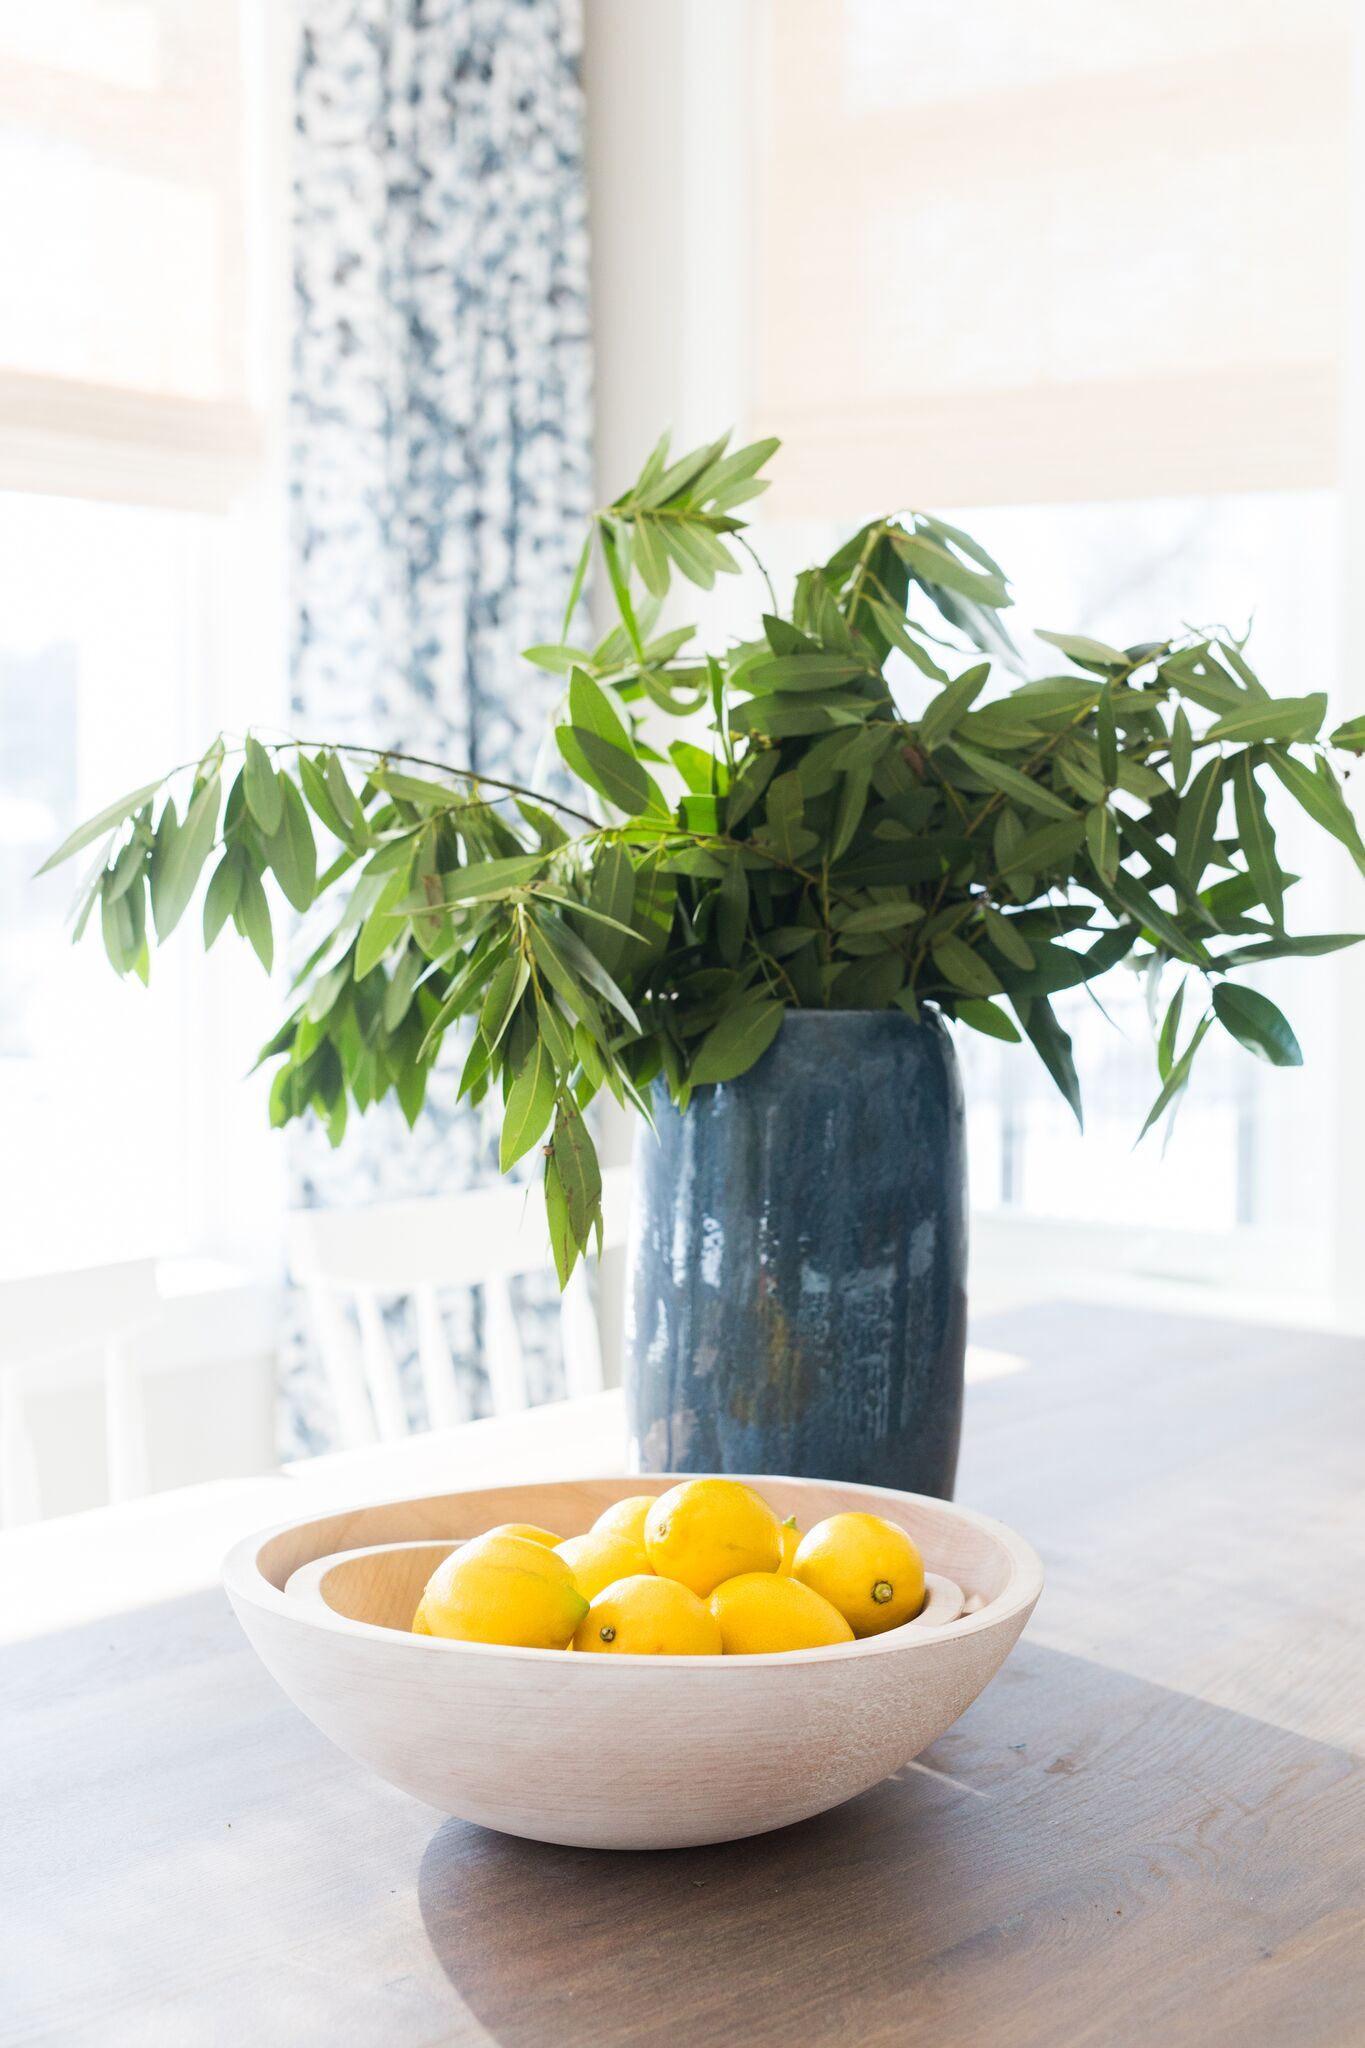 Bowl of lemons on top of counter